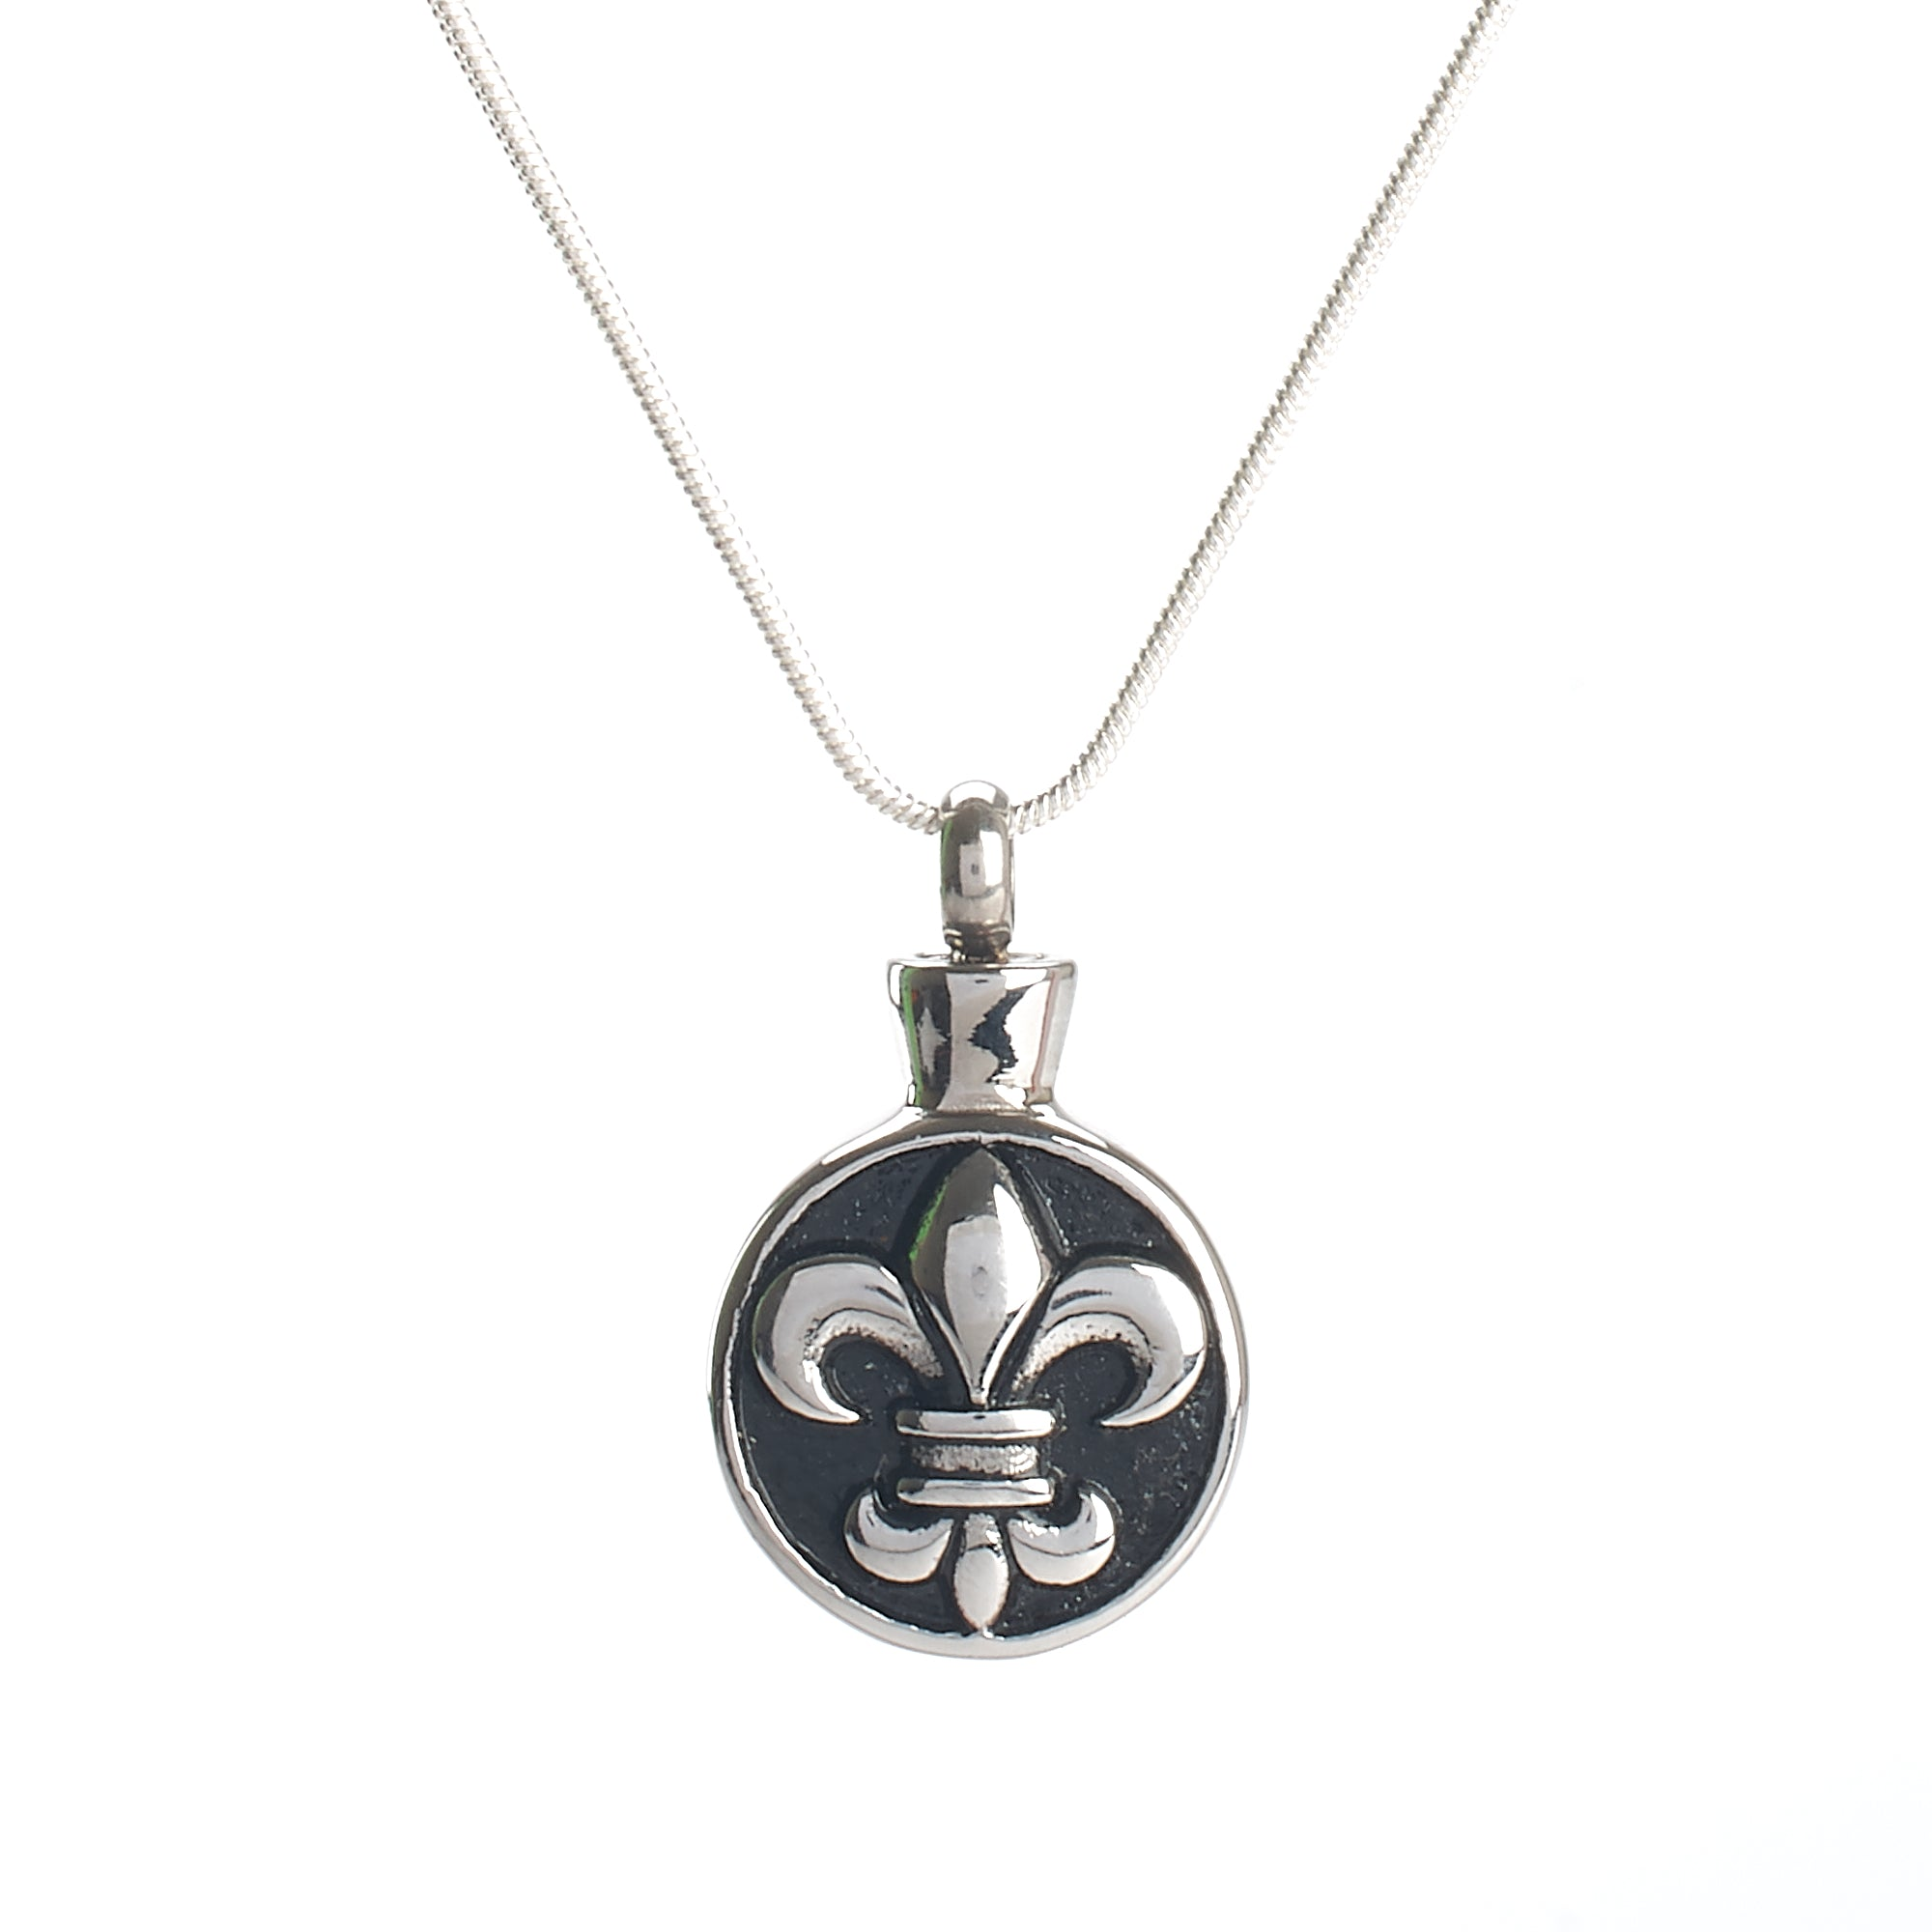 Cremation Pendant - Silver and Black Fleur de lis